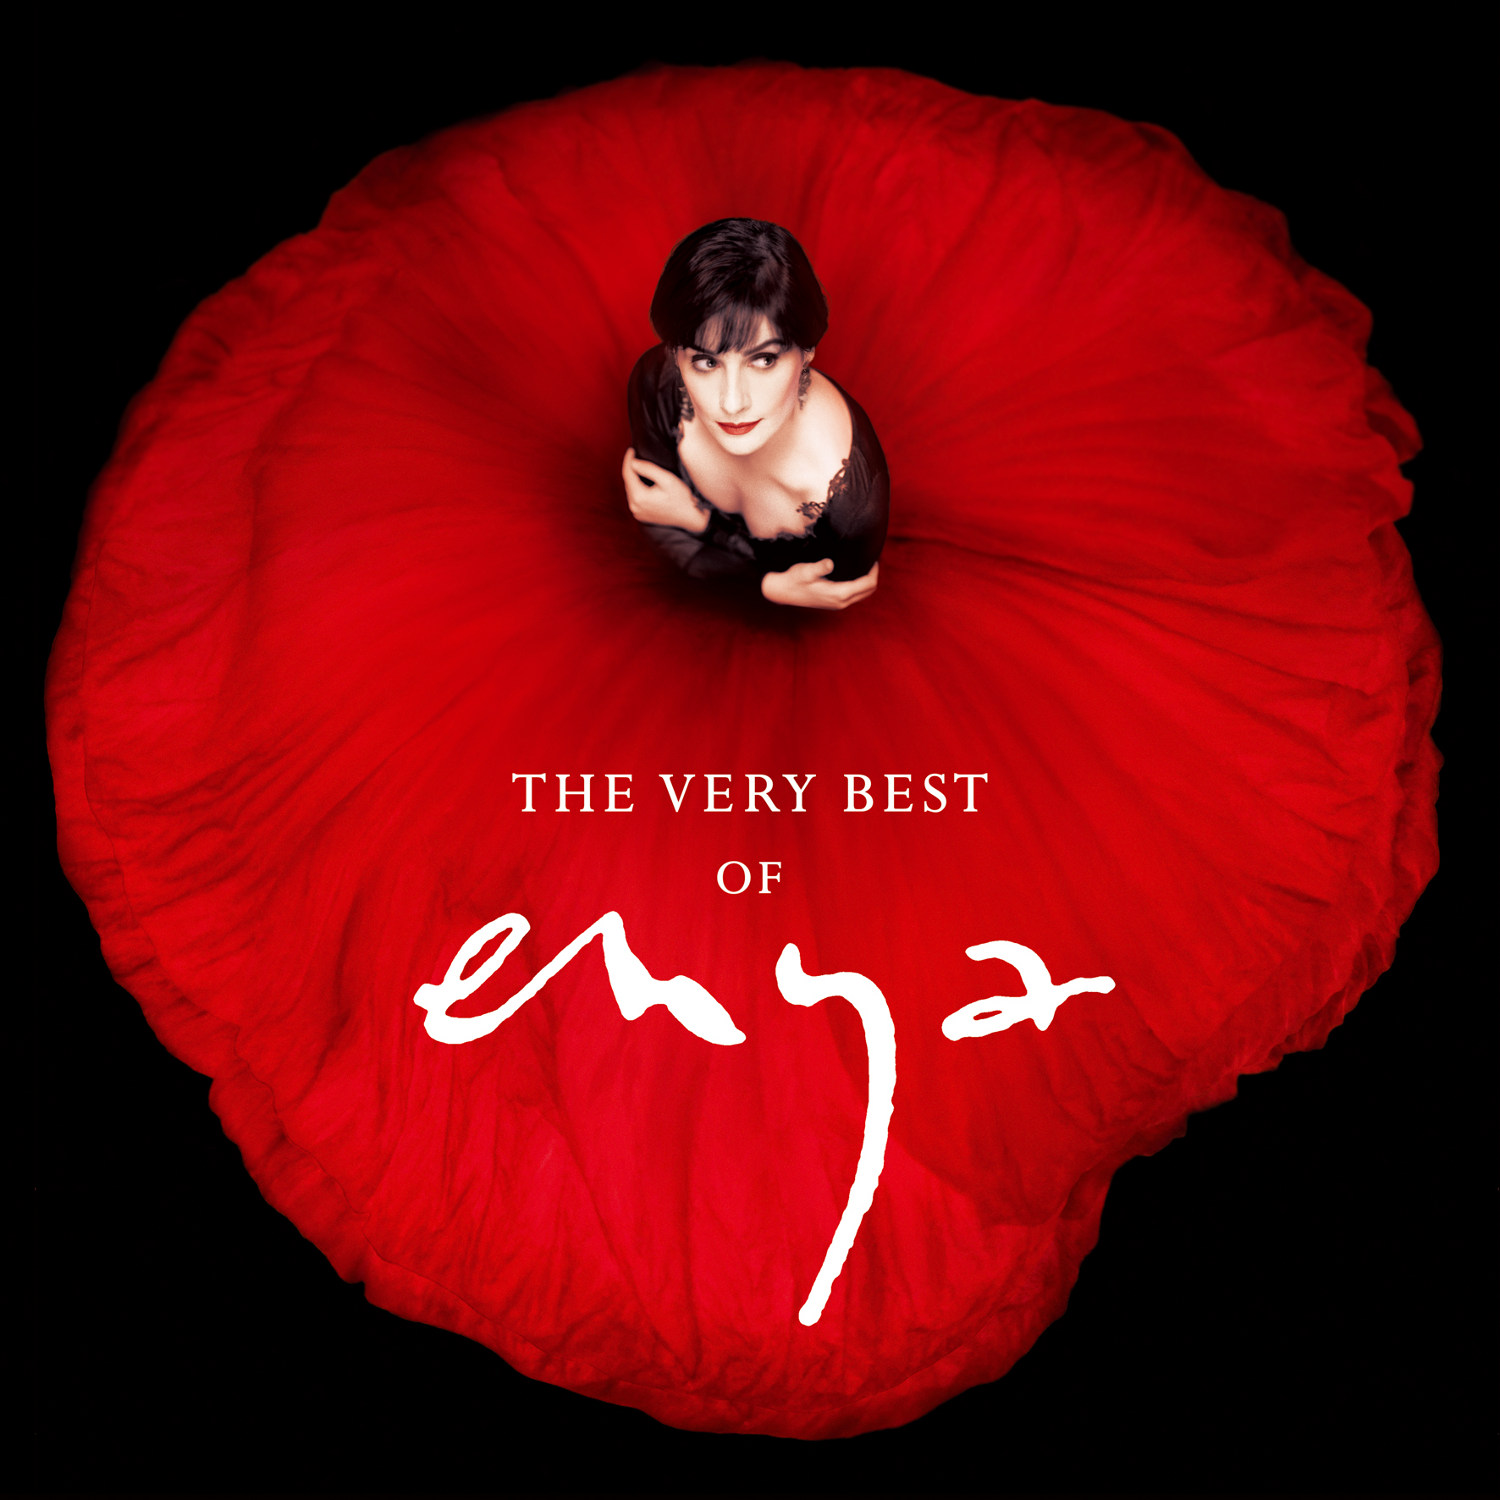 Memory Bank The+very+best+of+enya+front+cover